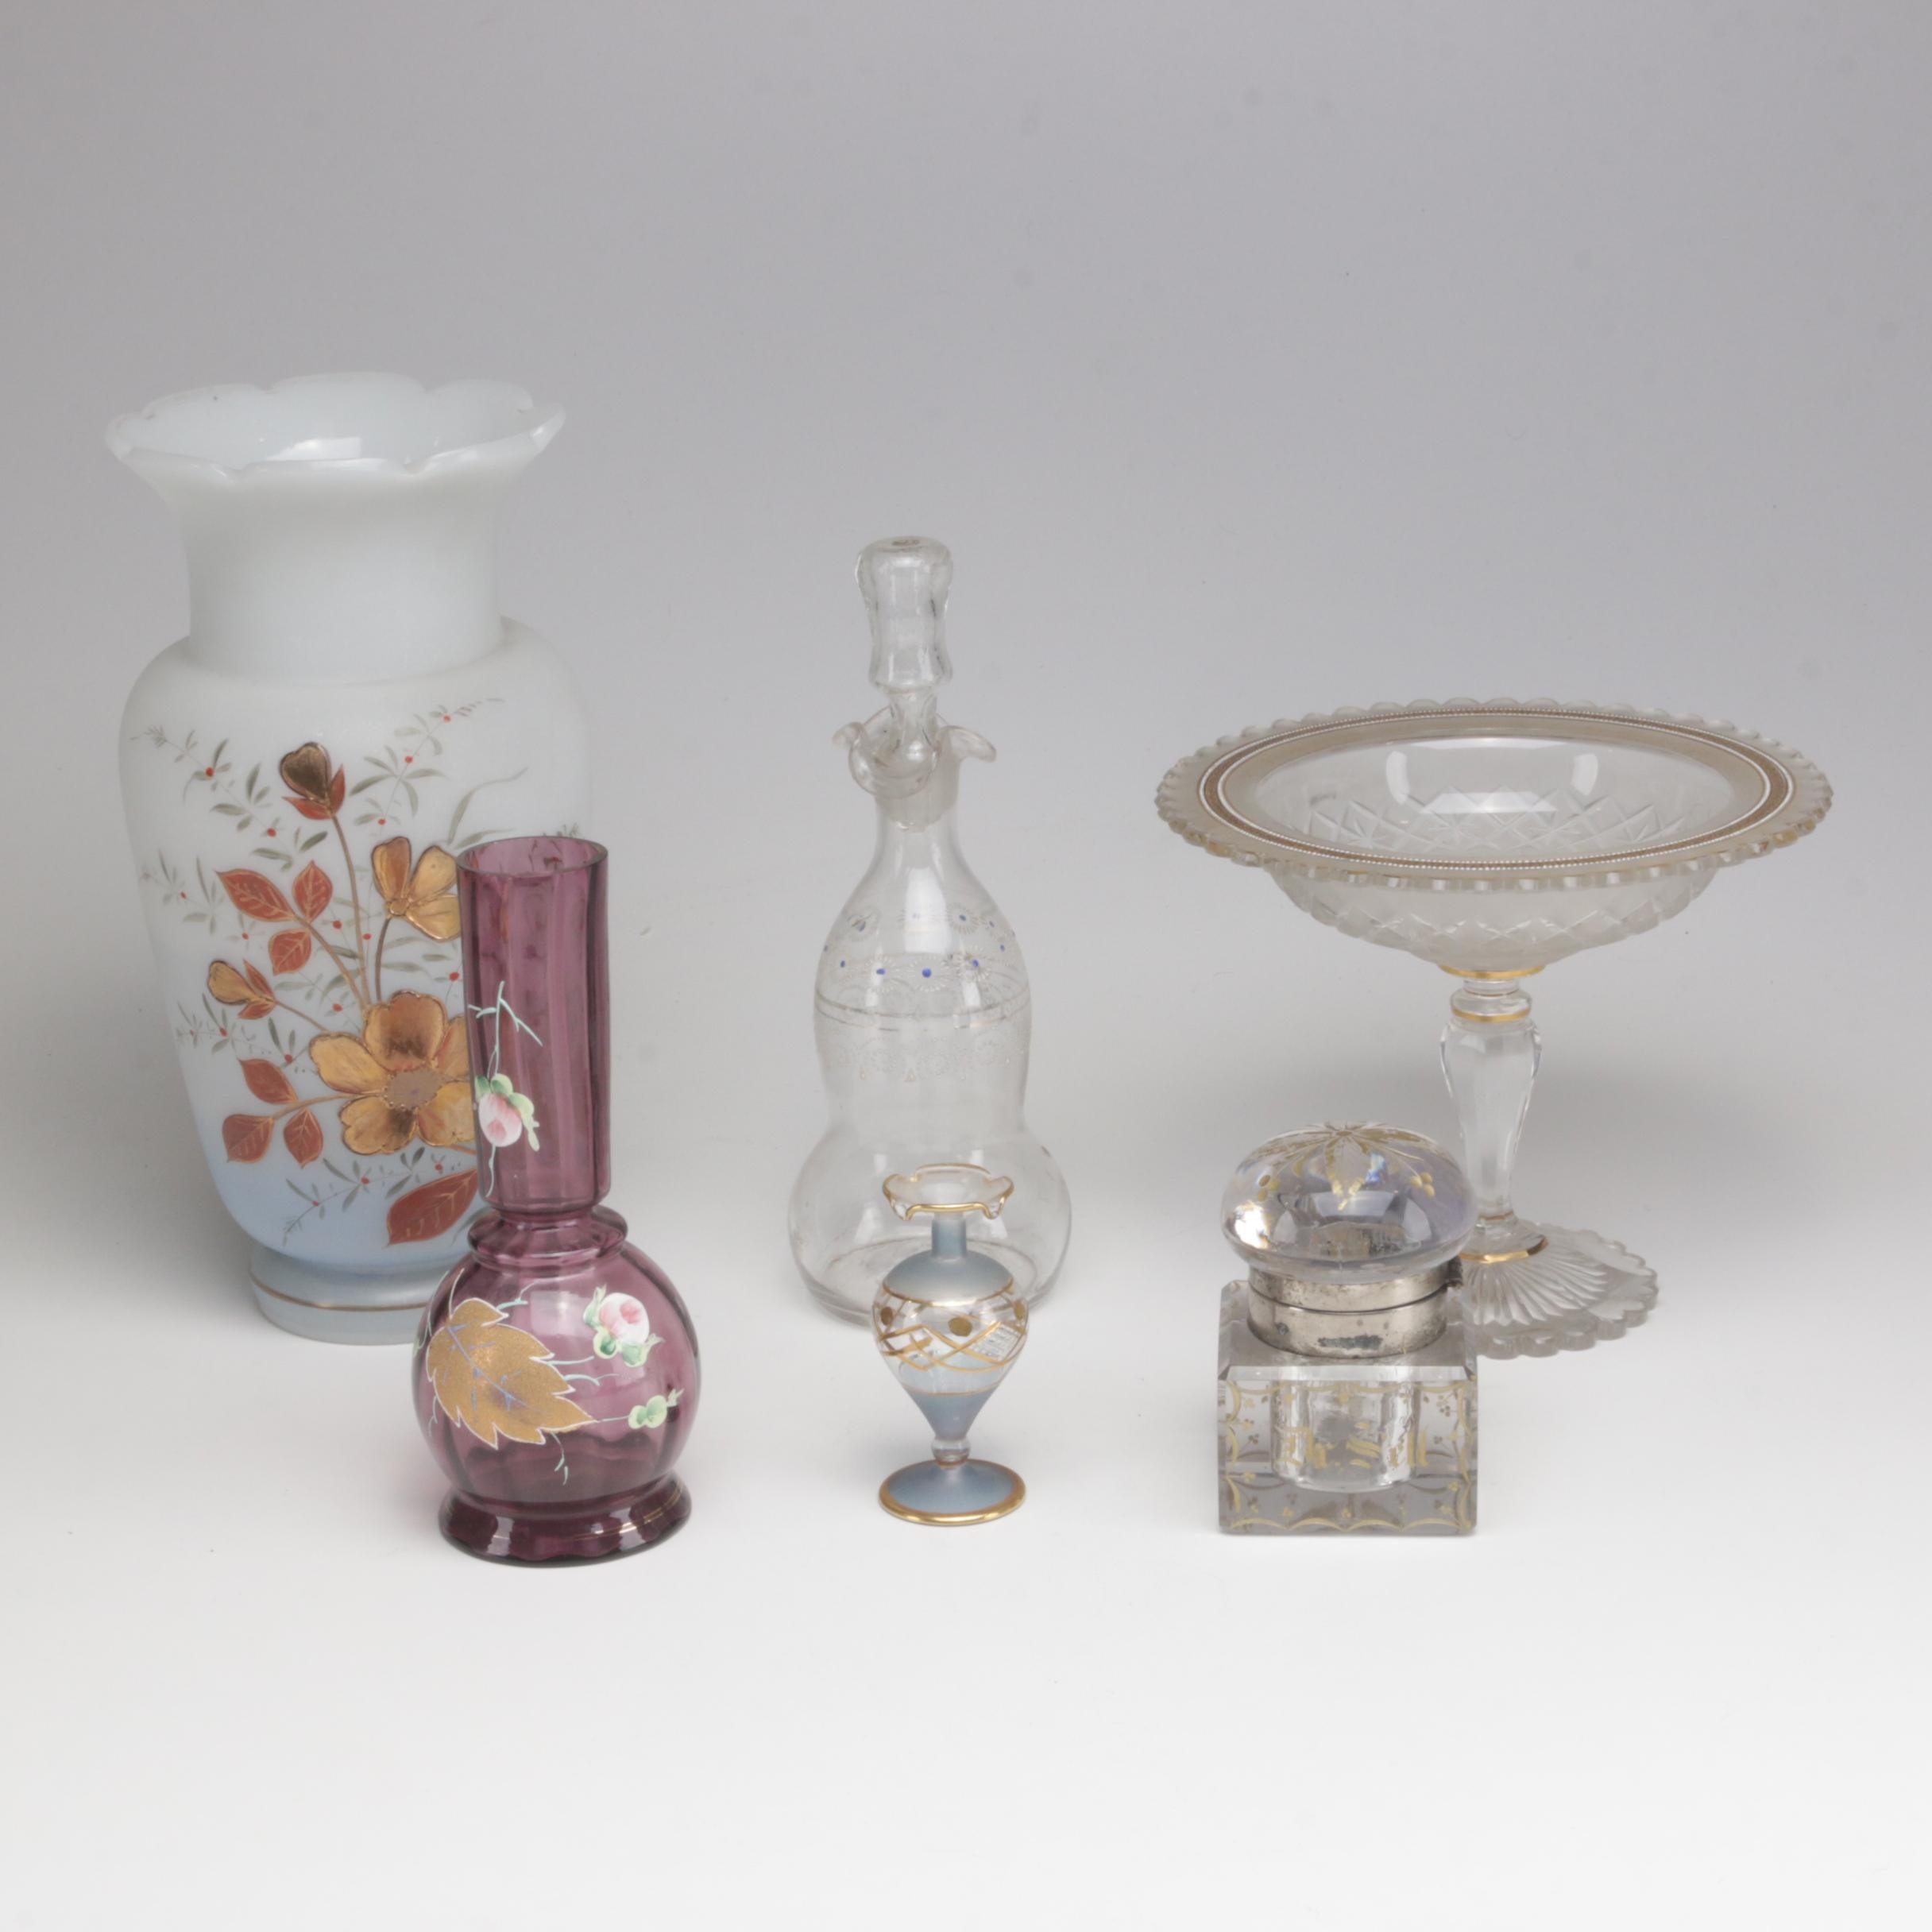 Antique Hand-Painted Glass Compote, Vases, Decanter and Inkwell